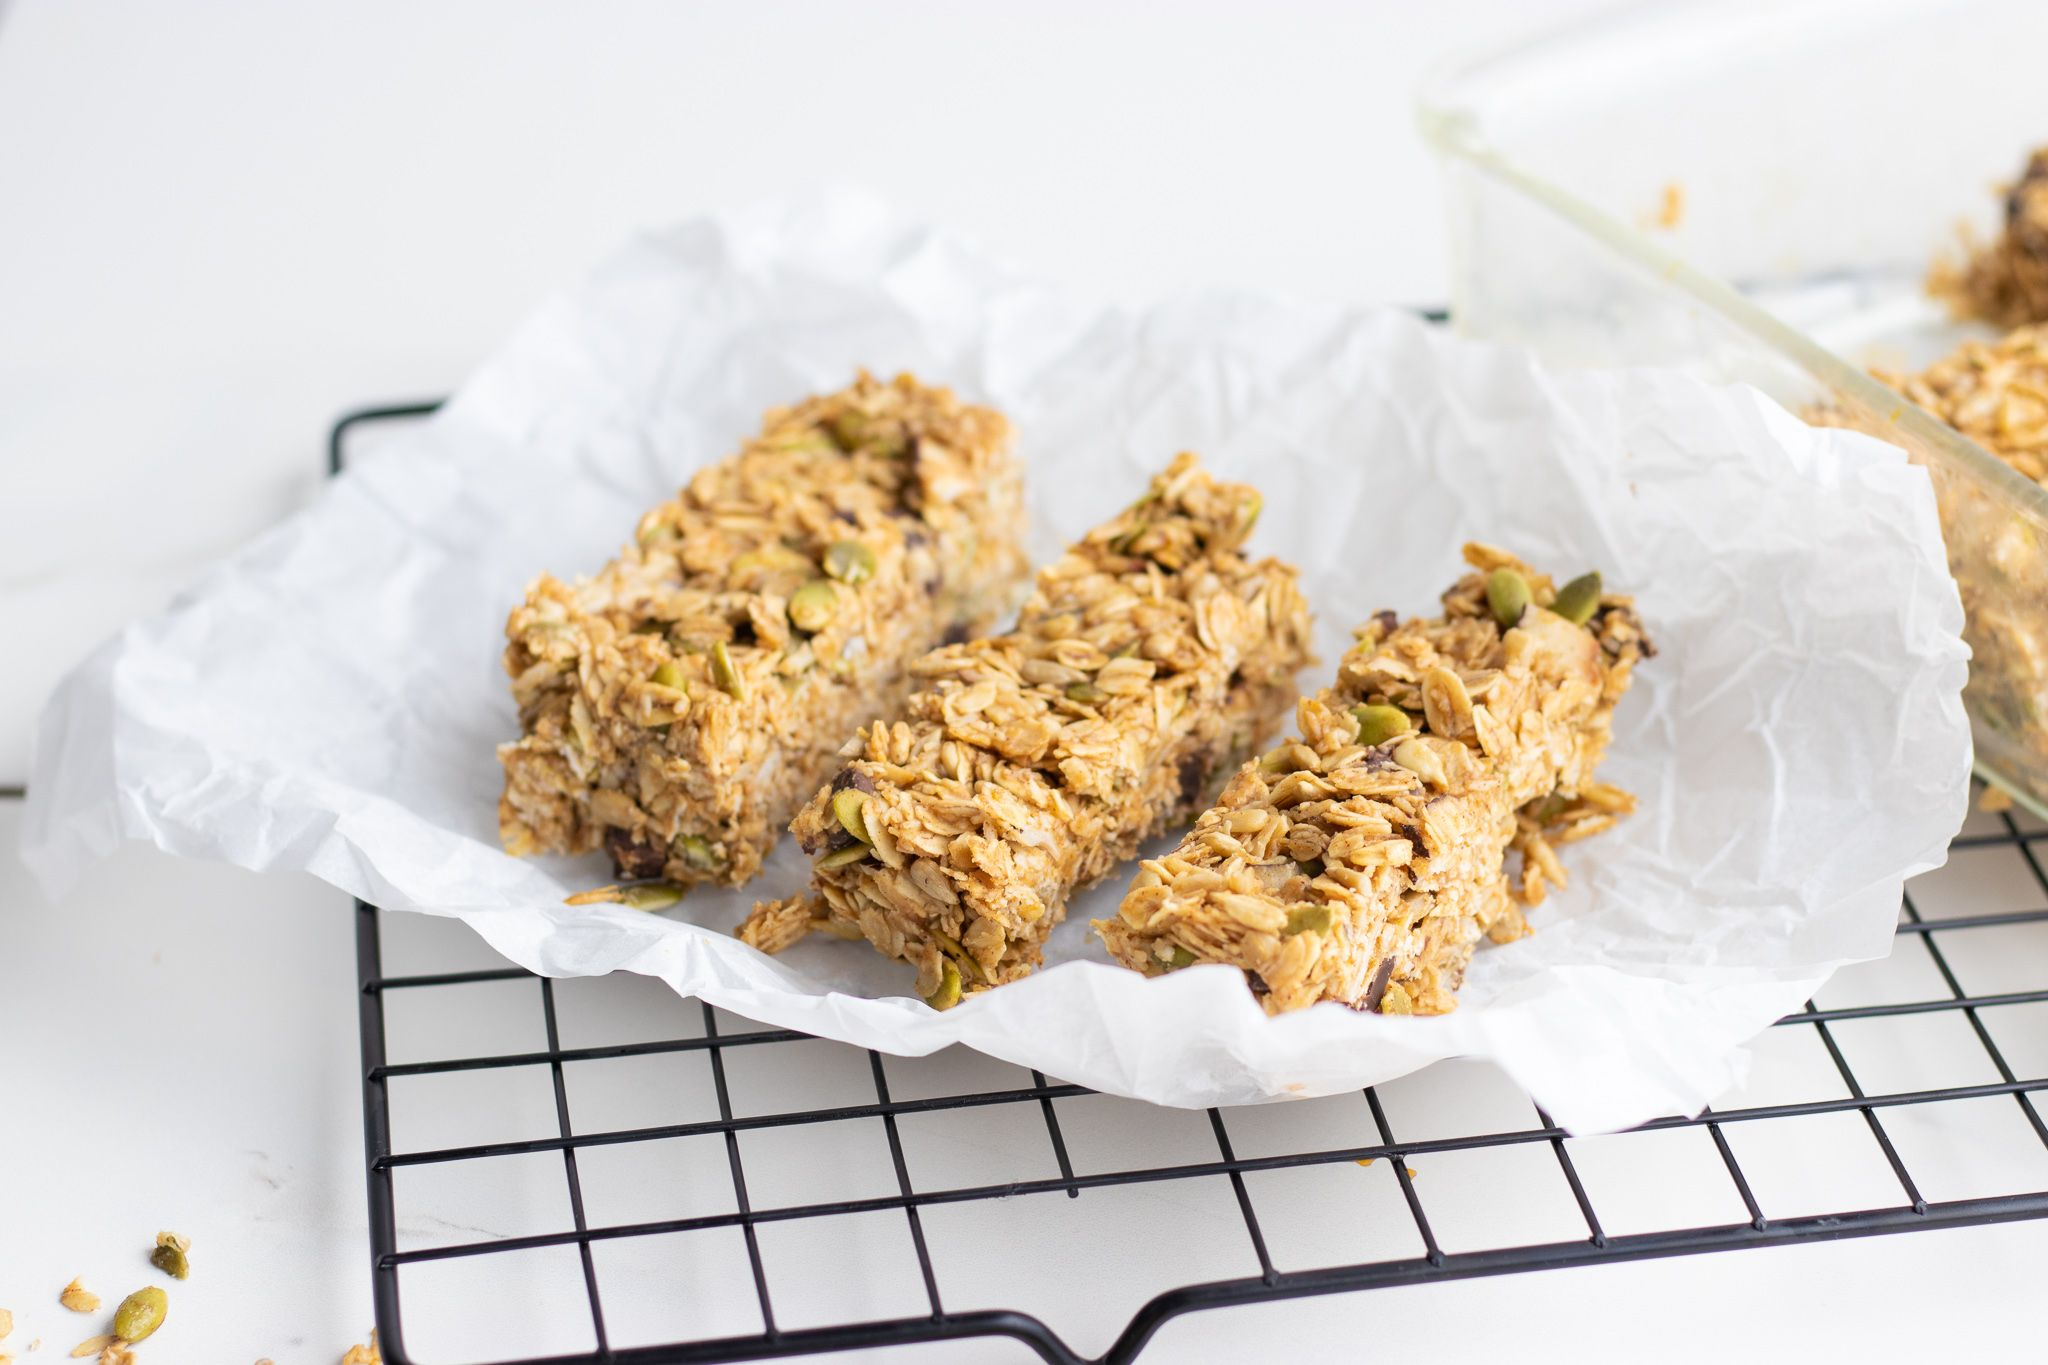 Easy Nut-Free No-Bake Chocolate Chip Granola Bars - Forkly